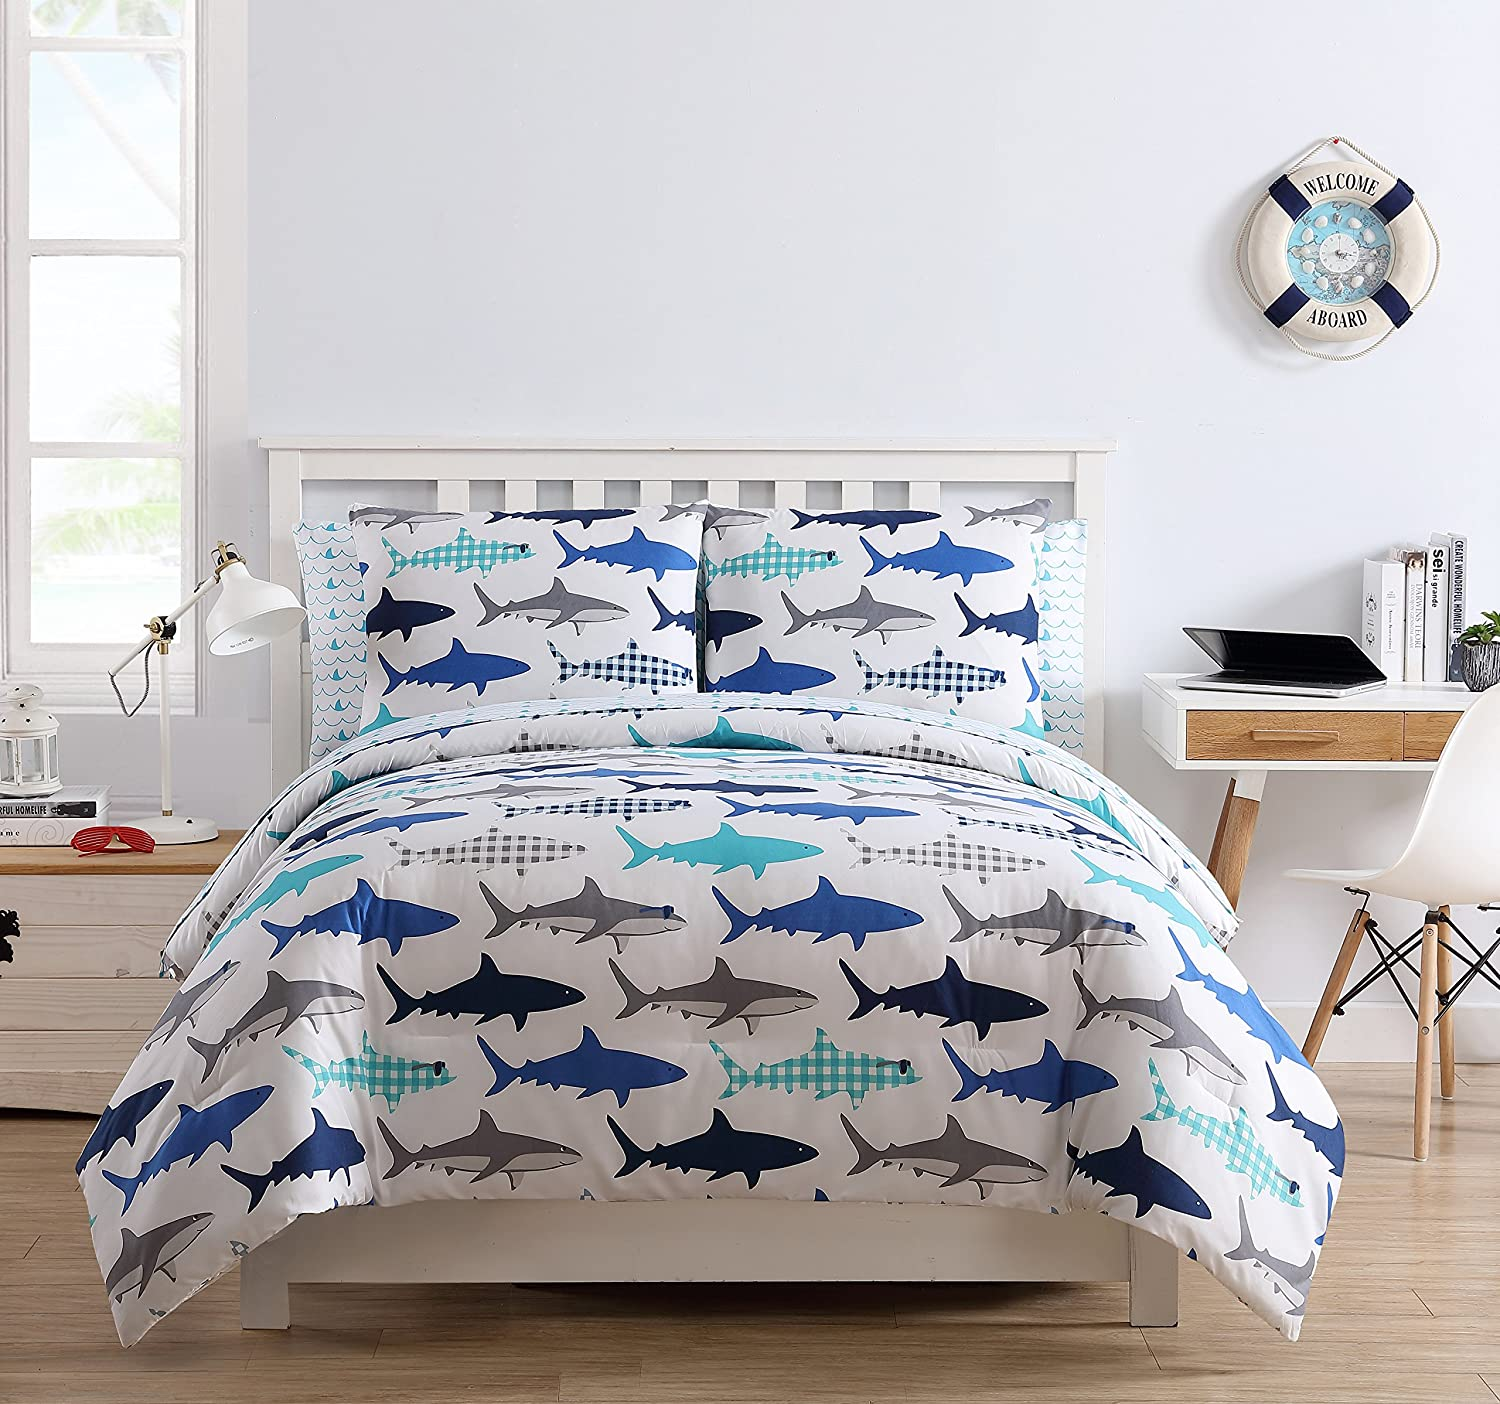 LO 7 Piece Kids White Blue Grey Shark Comforter Full Set, Ocean Plaid Shark Bedding Navy Teal Predator Fish Ocean Plaid Waves Accents Beach Cottage, Microfiber